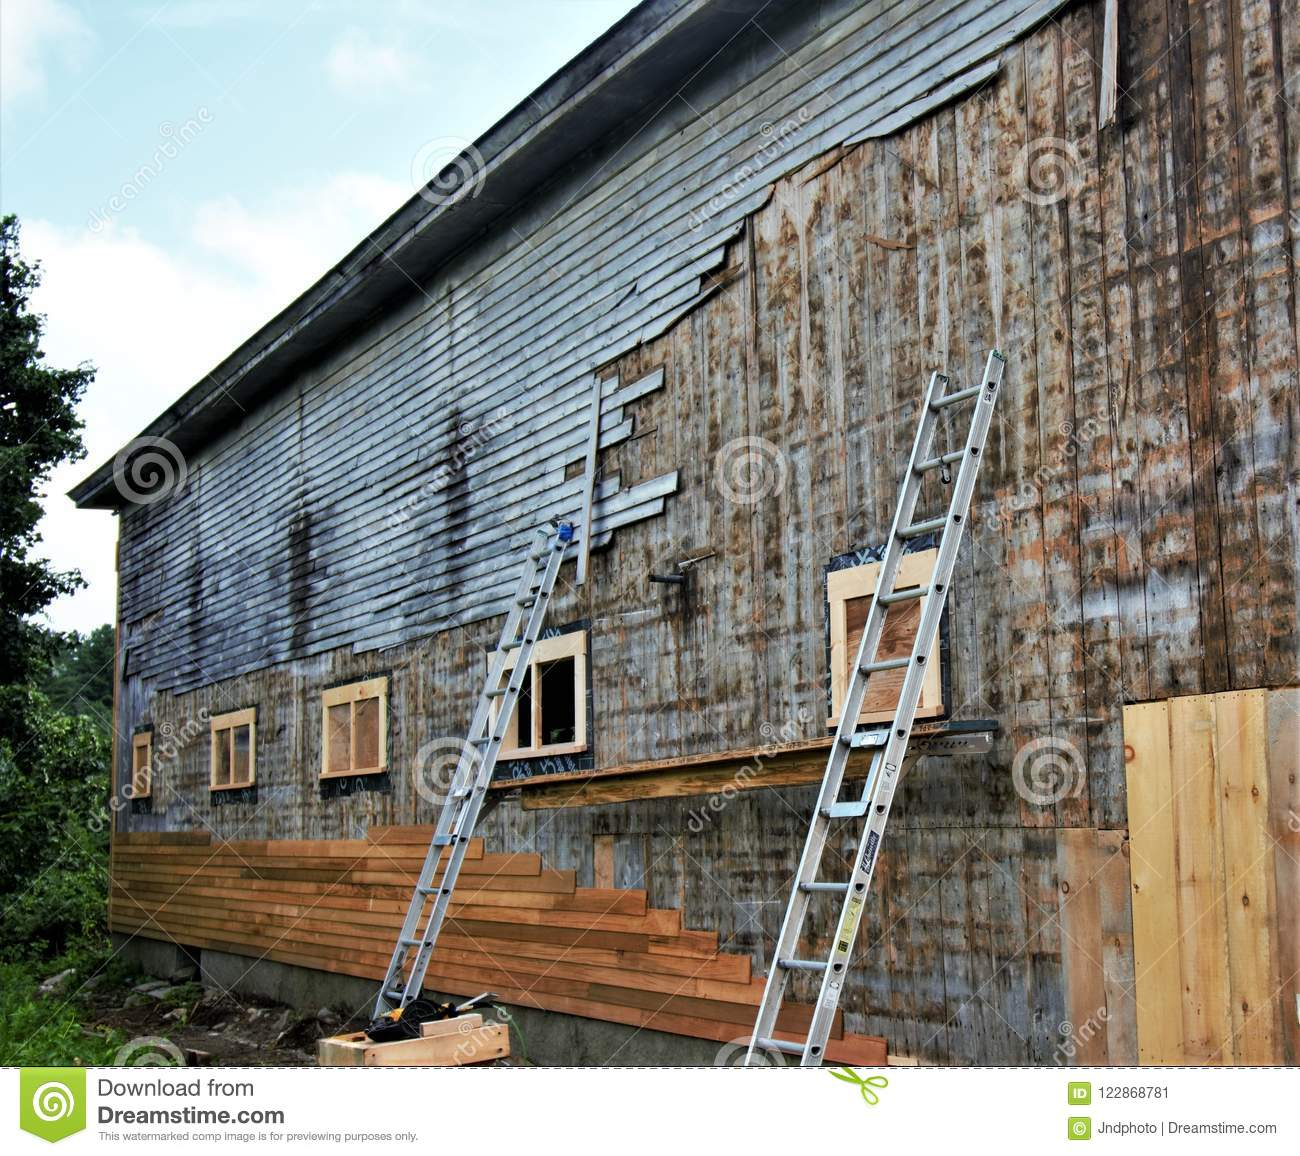 Replacing The Old Gray Siding Of Old Wooden Barn With New